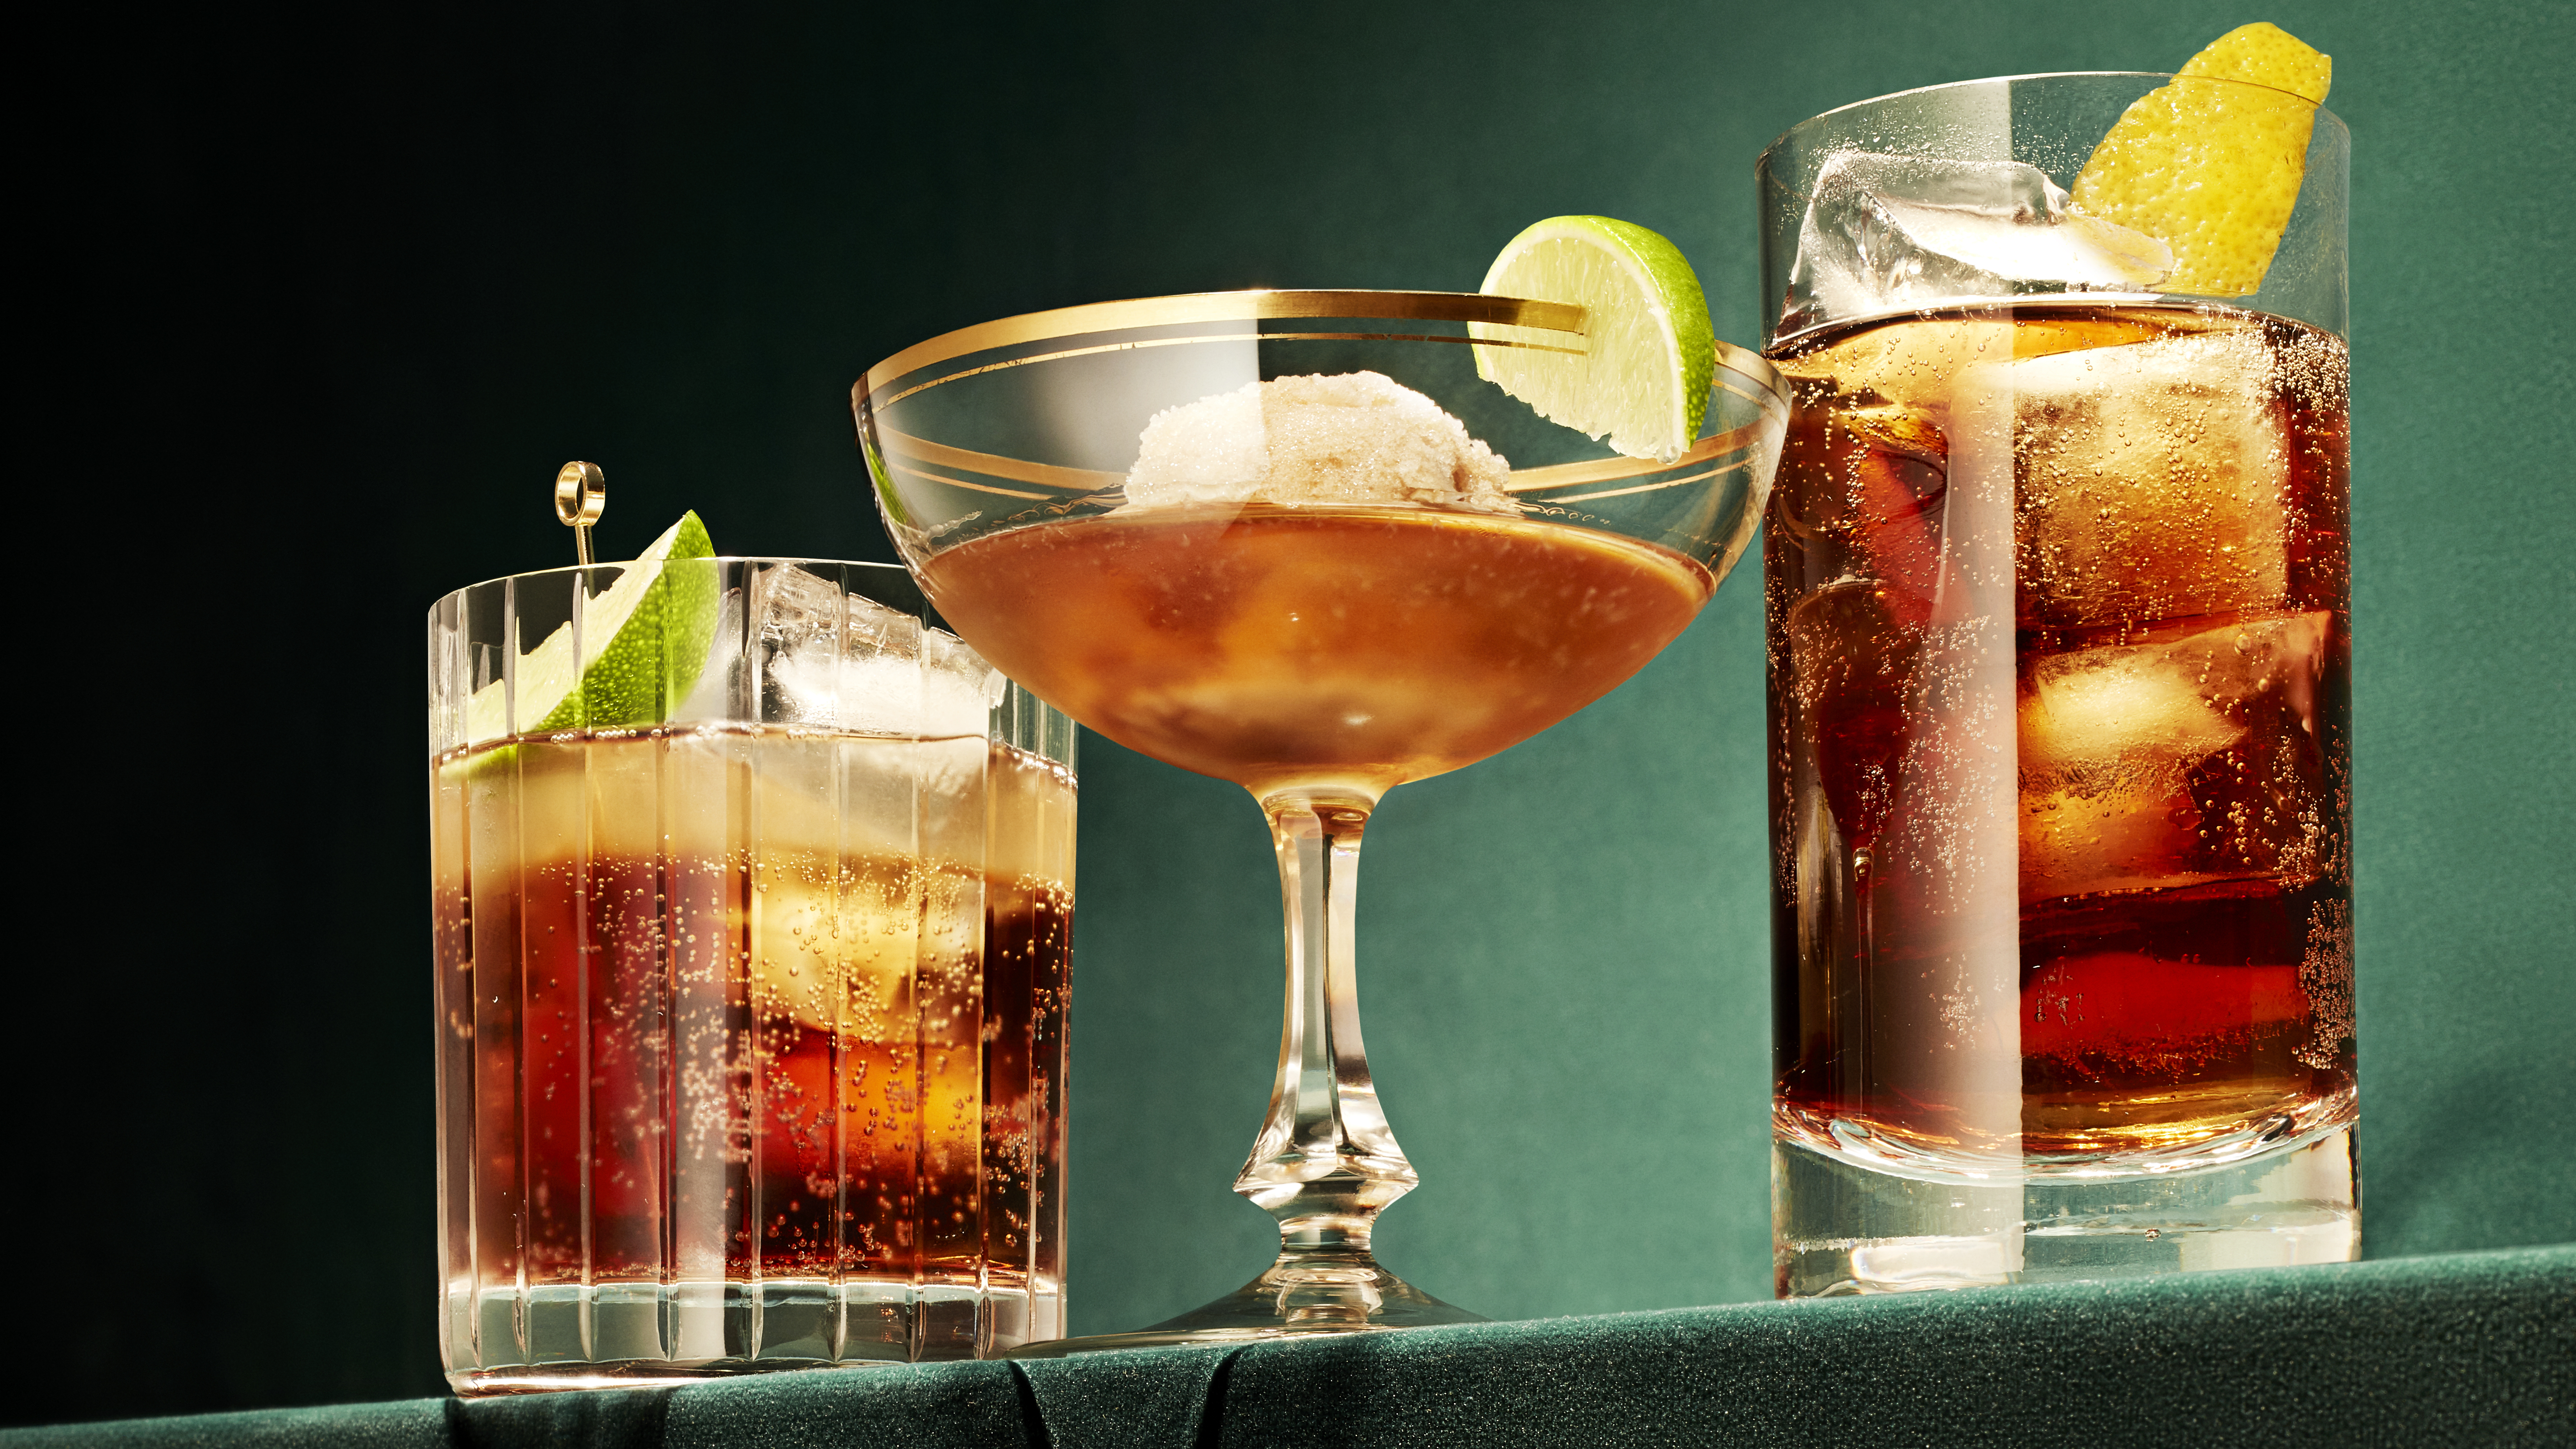 The Rum and Coke, Rebooted: 3 Must-Try Recipes You Can Make at Home